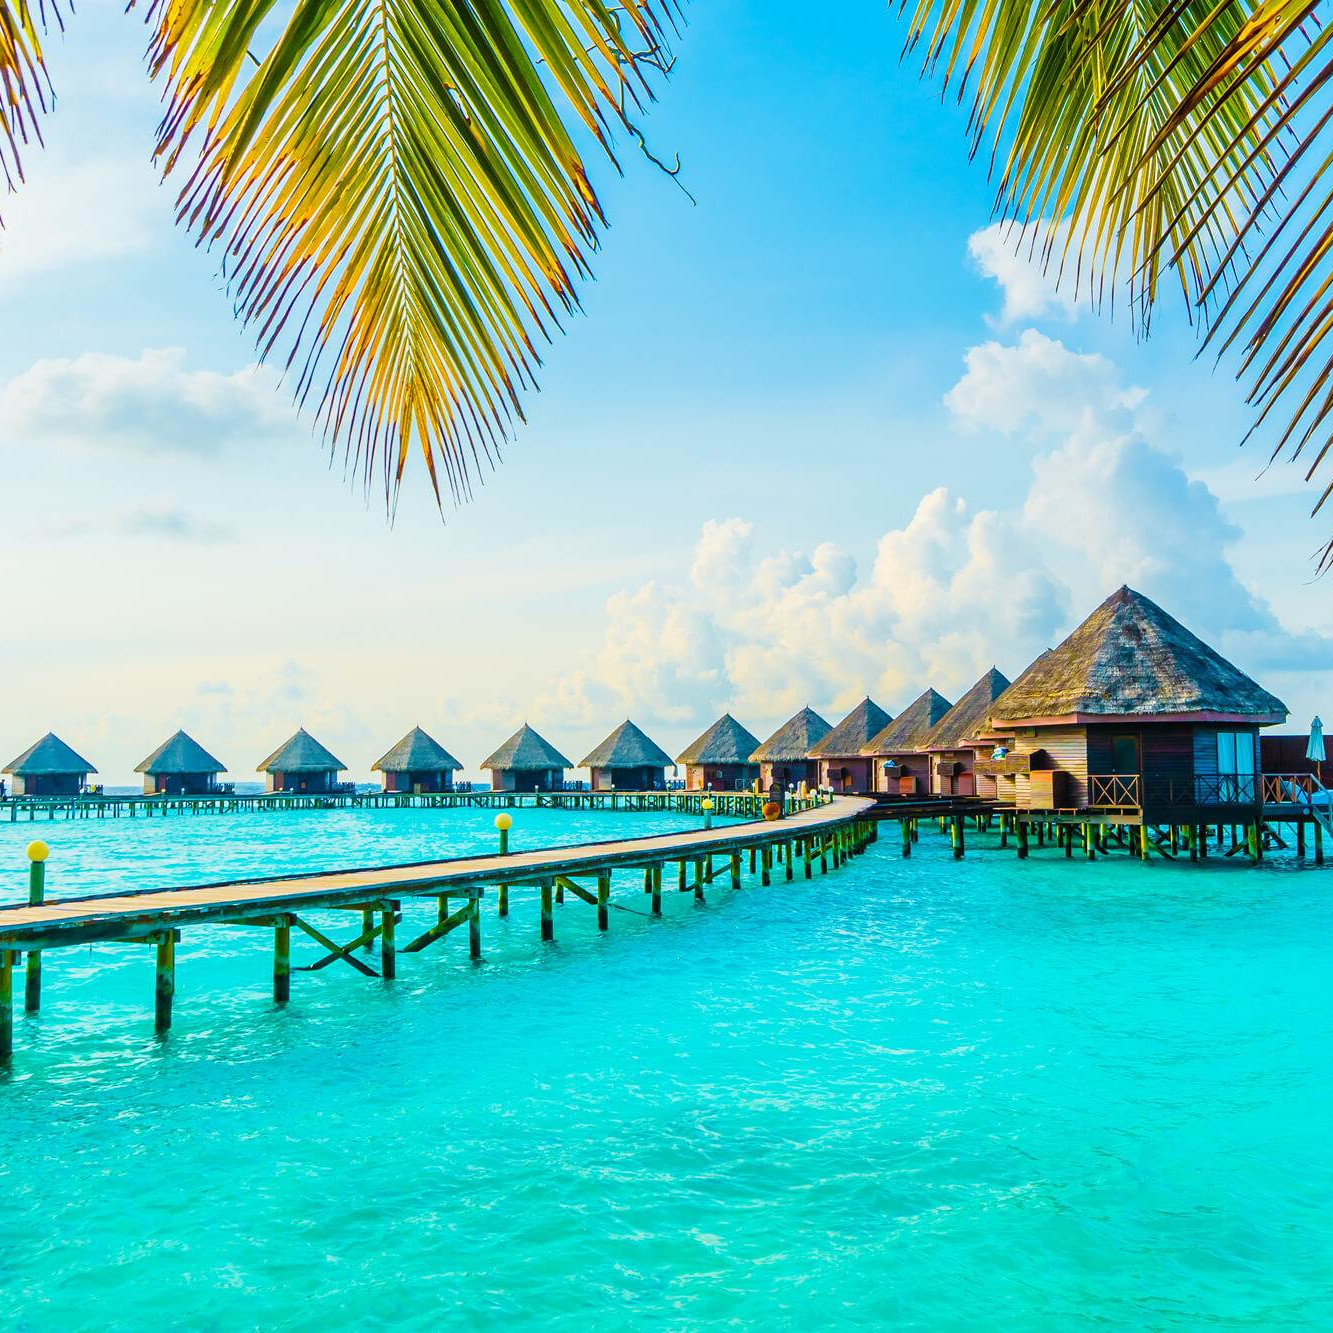 The maldives travel